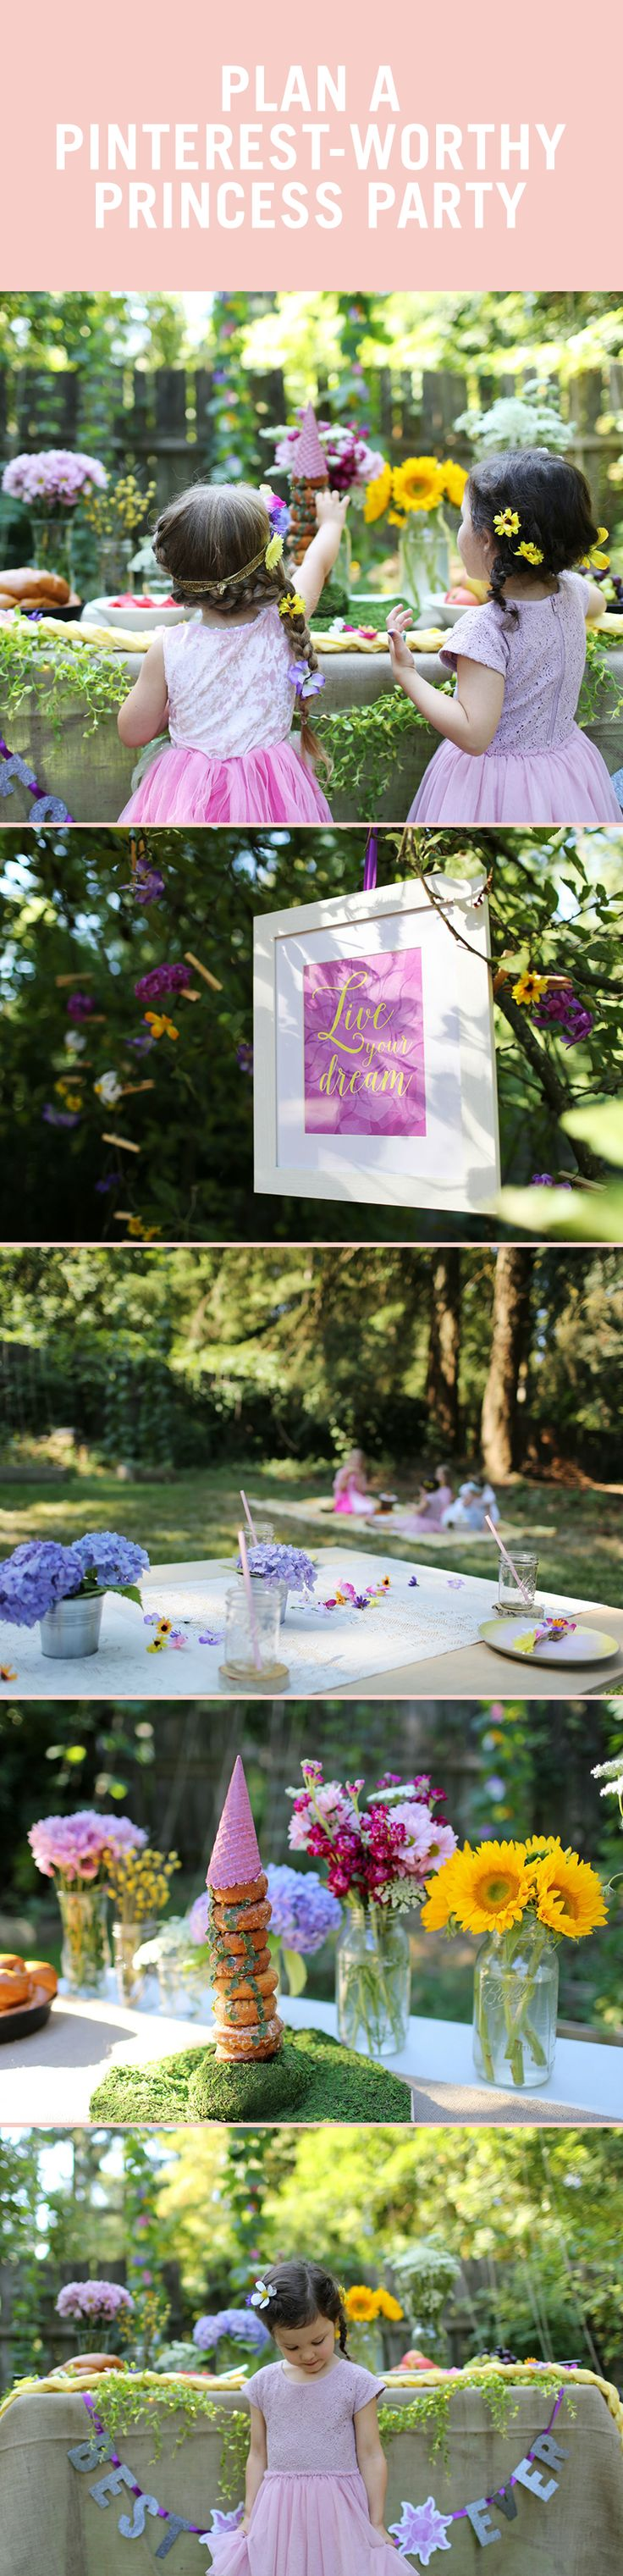 how to plan a pinterest worthy princess party on a budget - Disney Princess Games And Activities